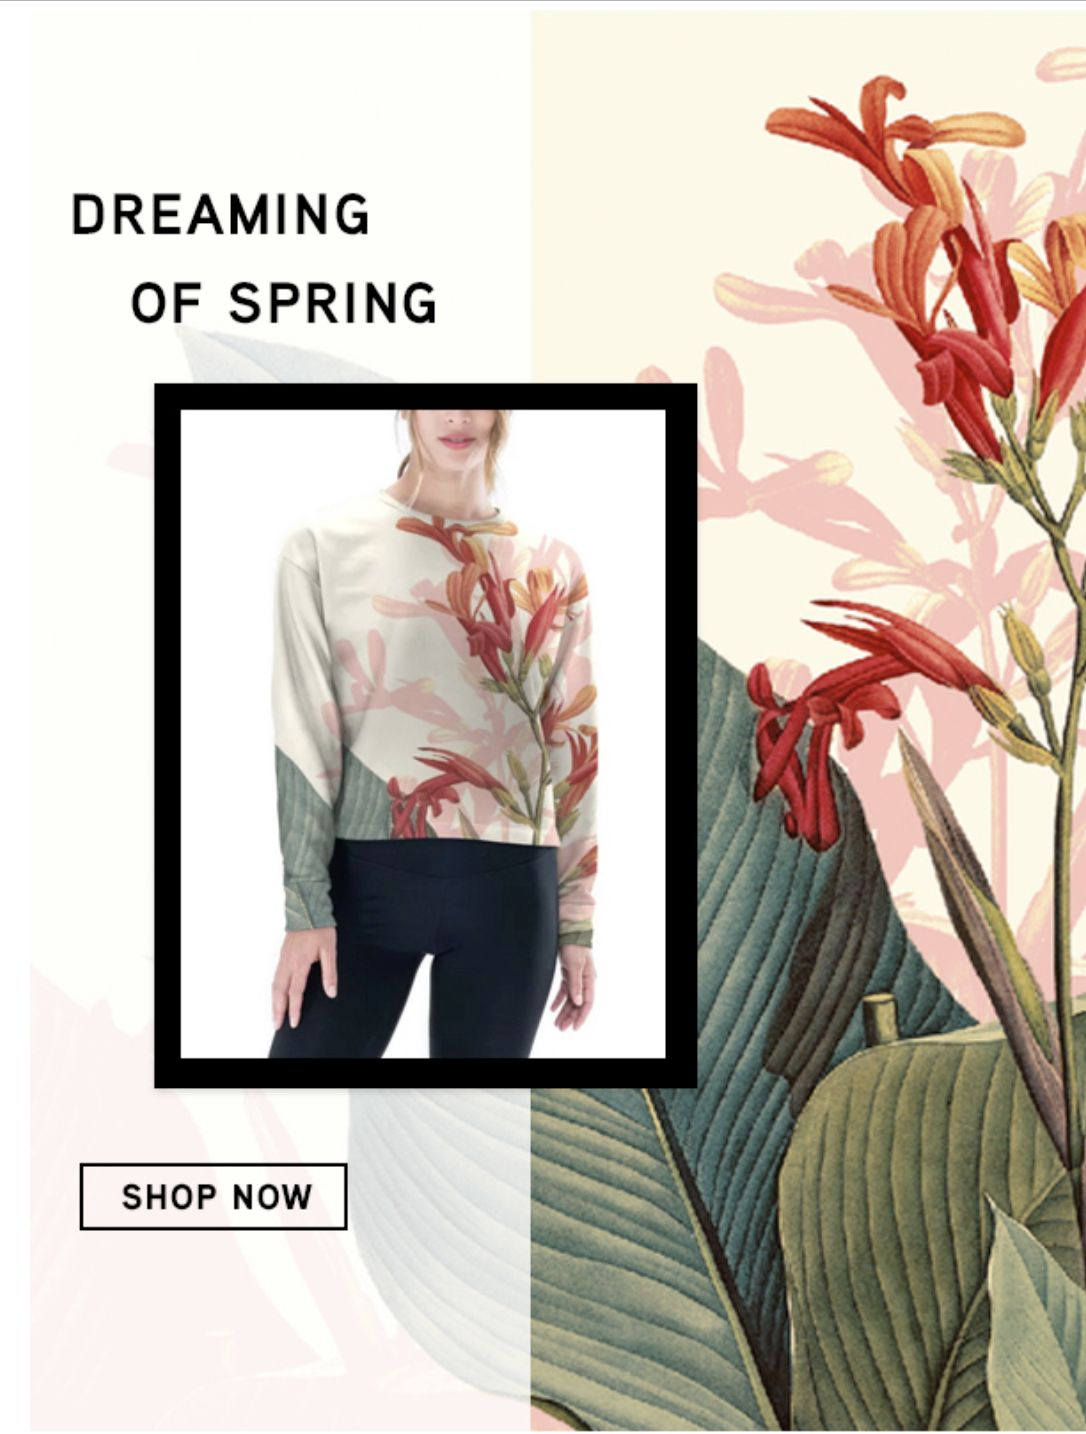 Spring is almost here, and we're already dreaming of